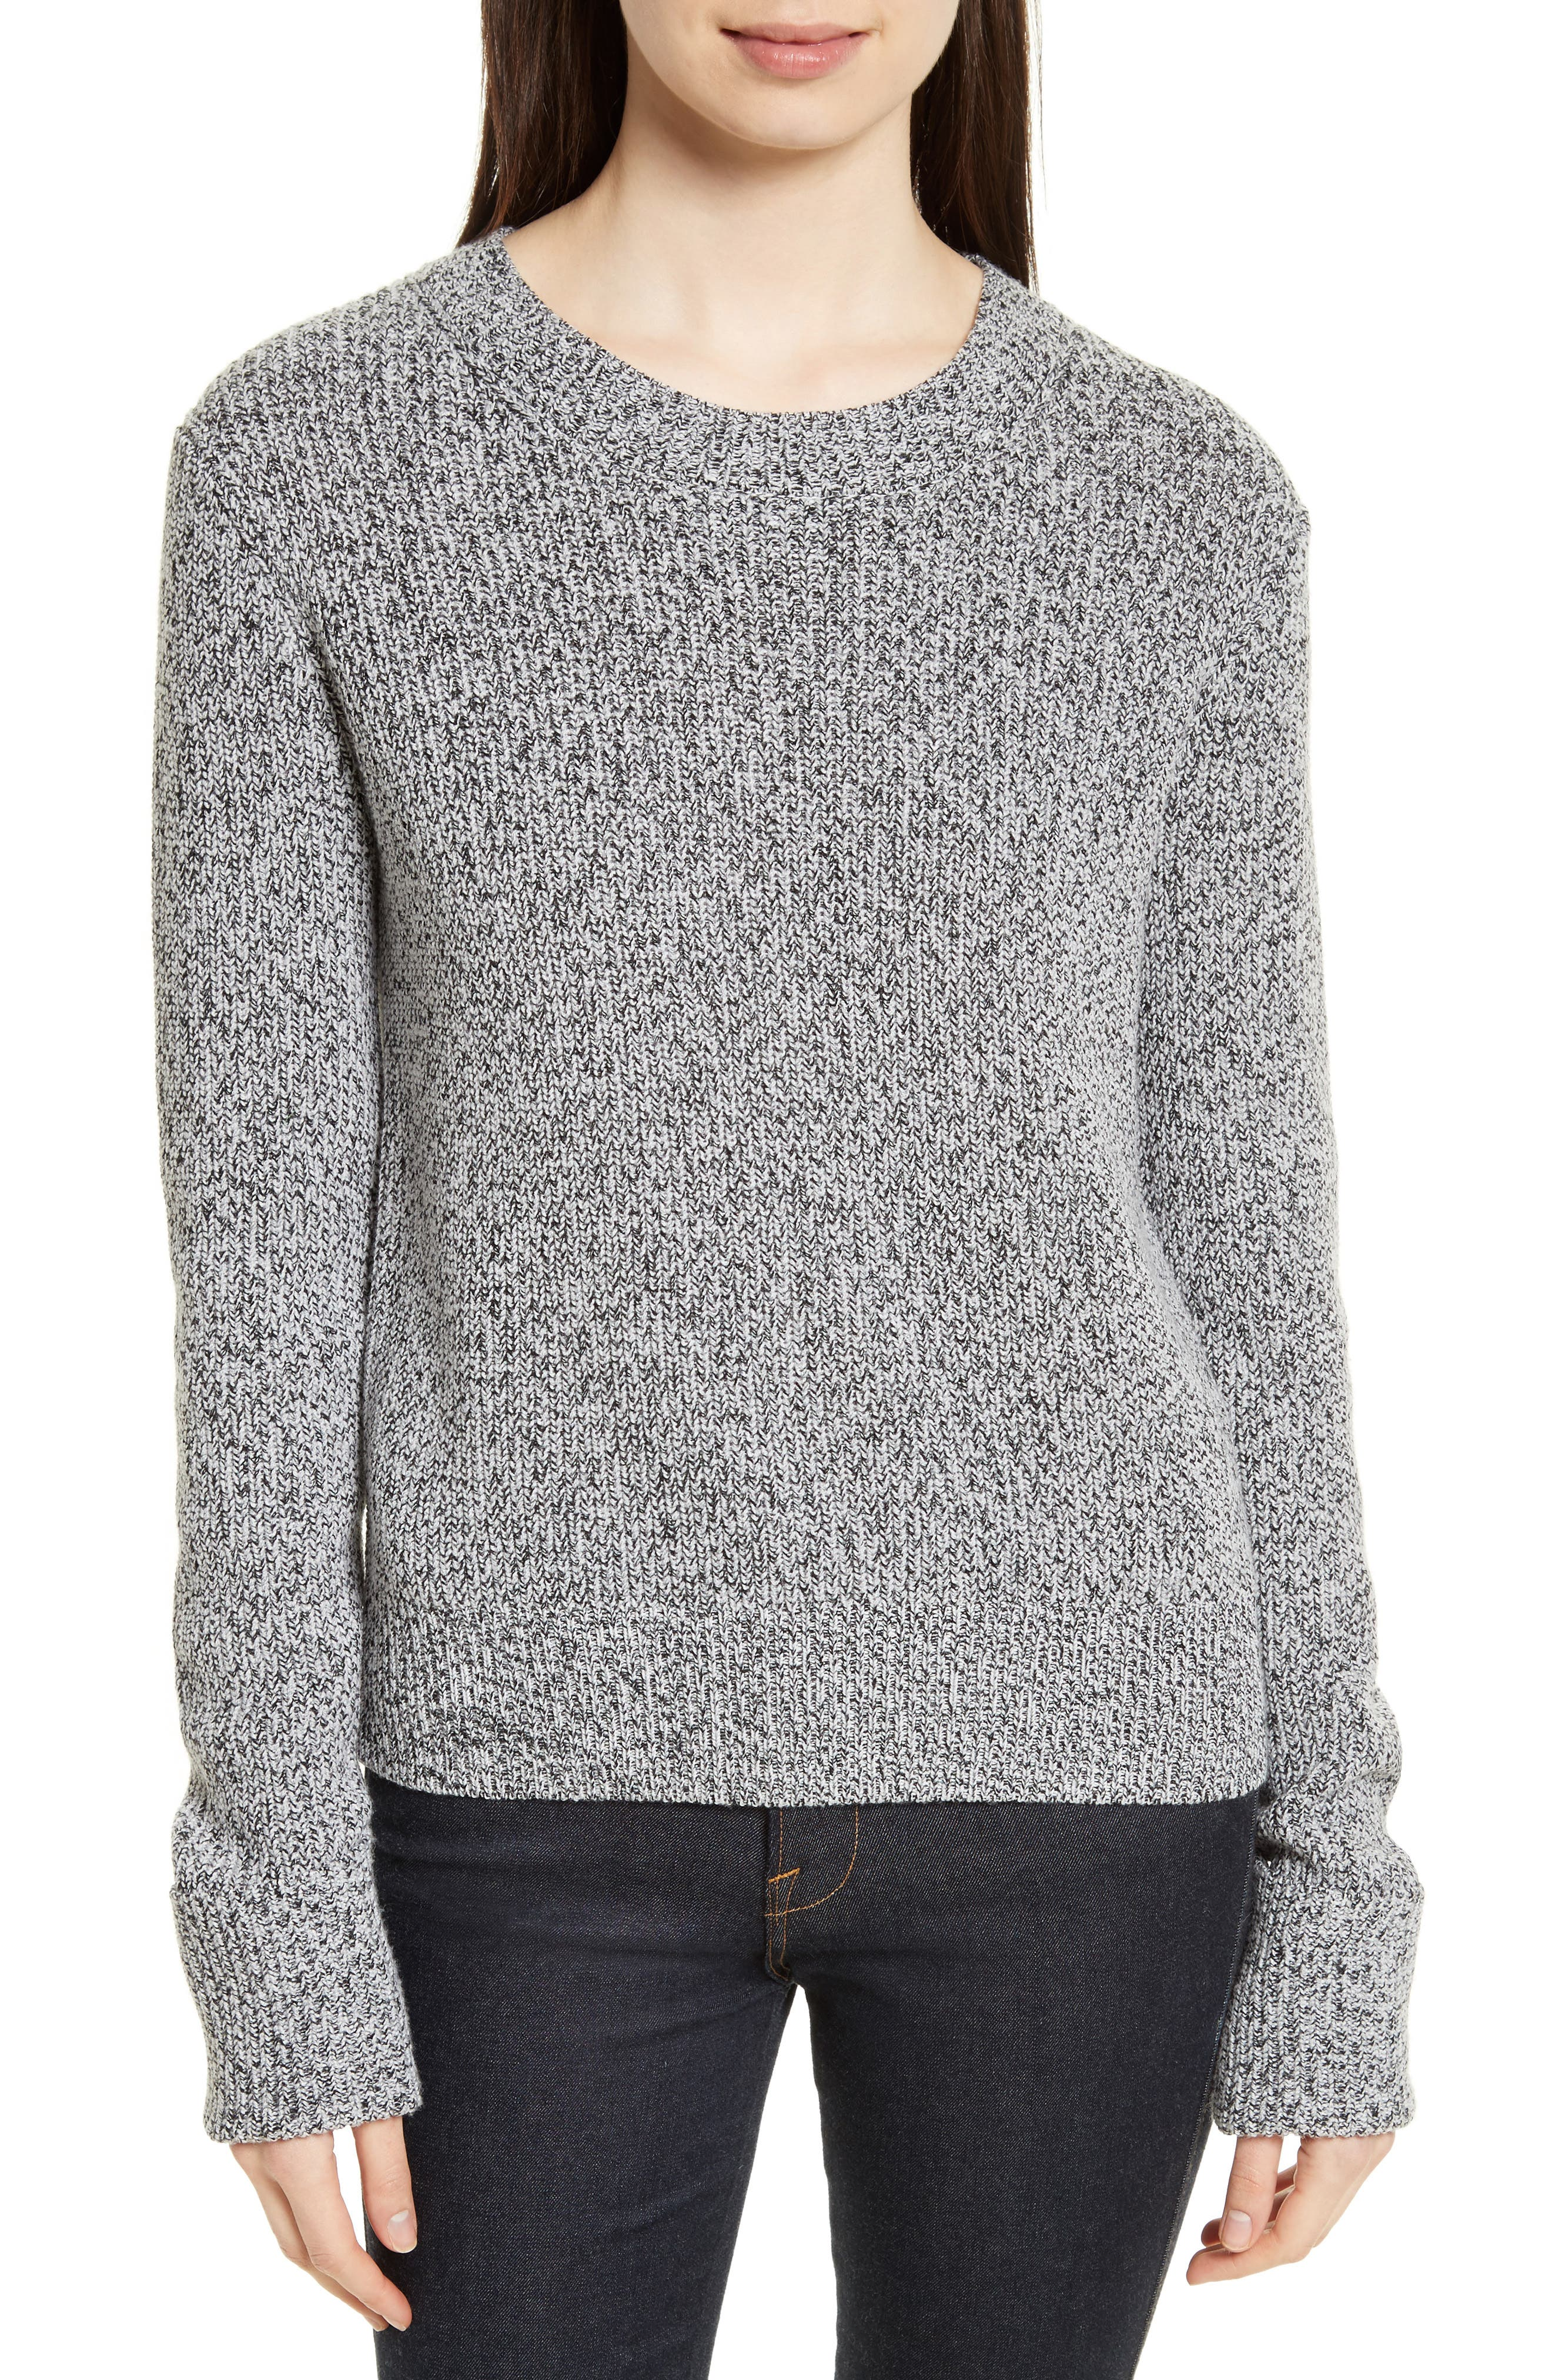 Rib Cuff Marled Sweater,                             Main thumbnail 1, color,                             Black/ Ivory